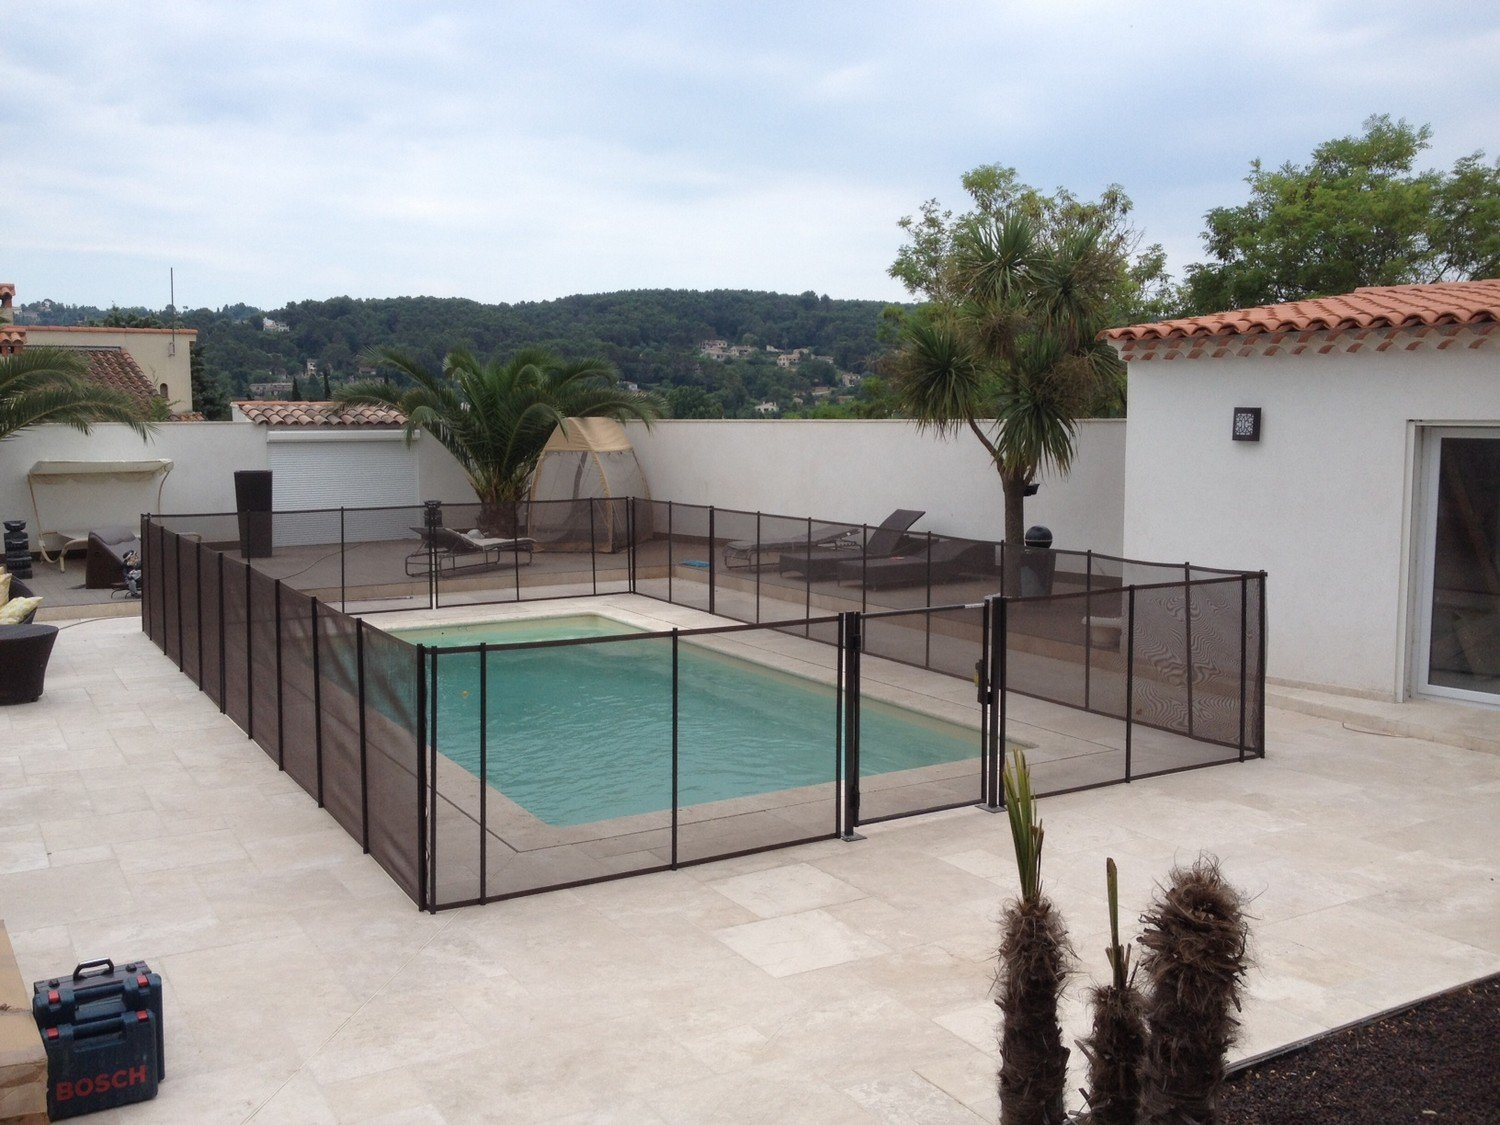 Barri re de s curit piscine la beethoven for Barriere piscine beethoven prestige